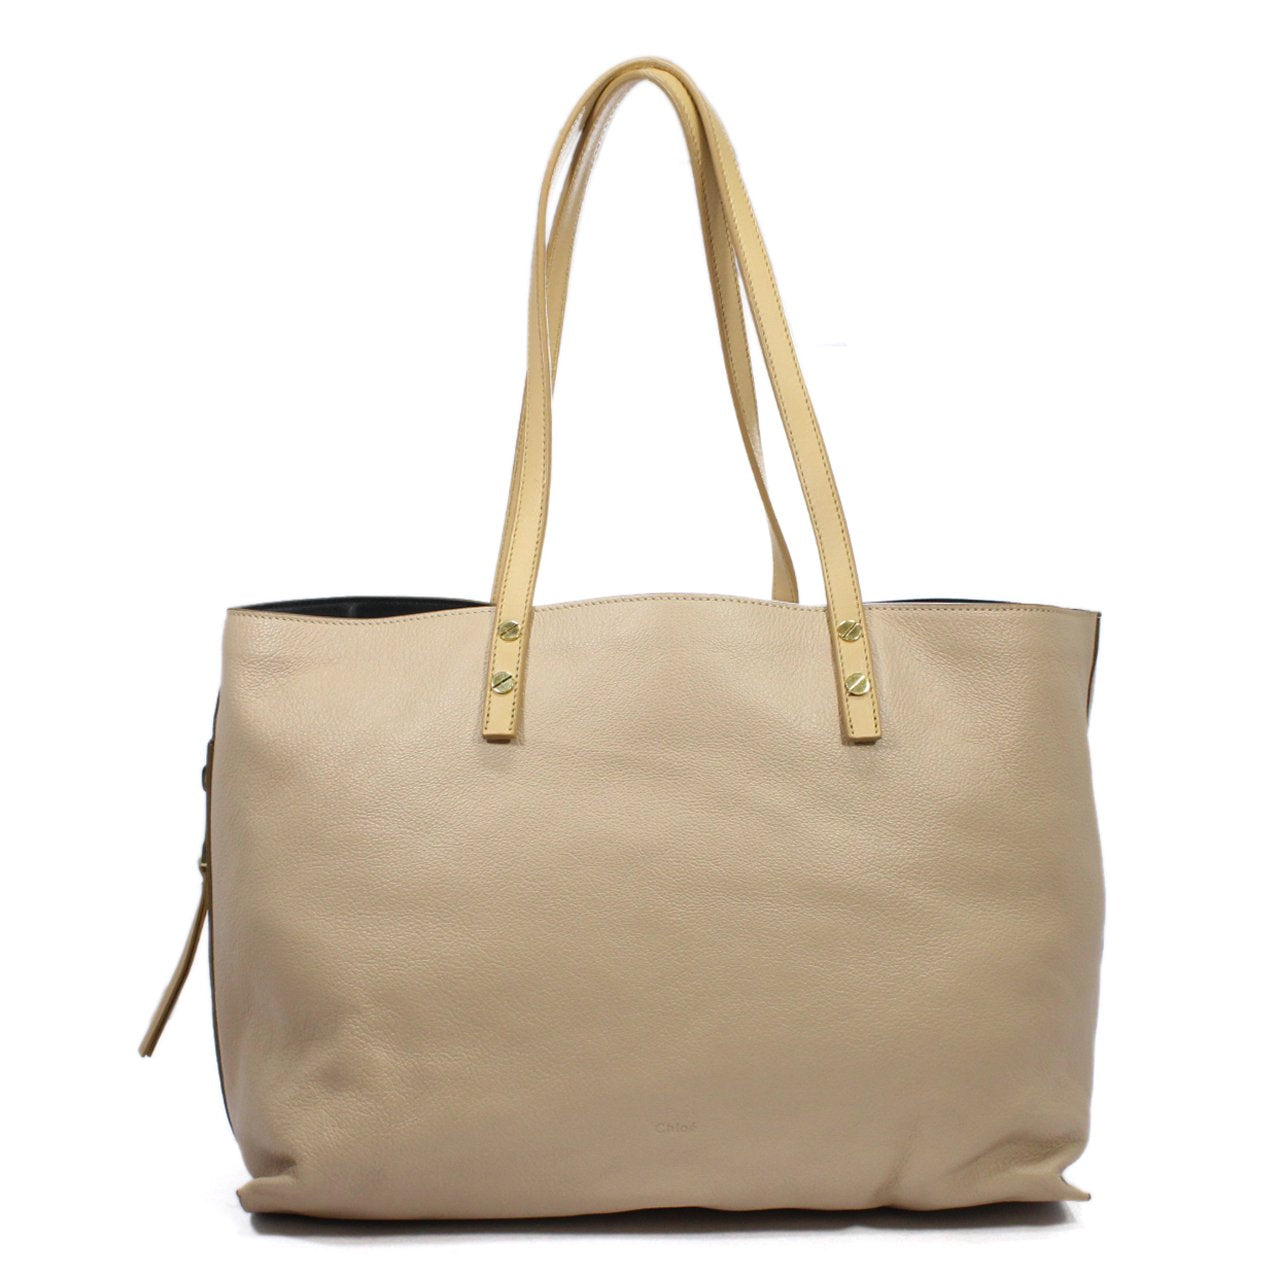 Chloe Dilan Lambskin Leather Coated Tote Bag